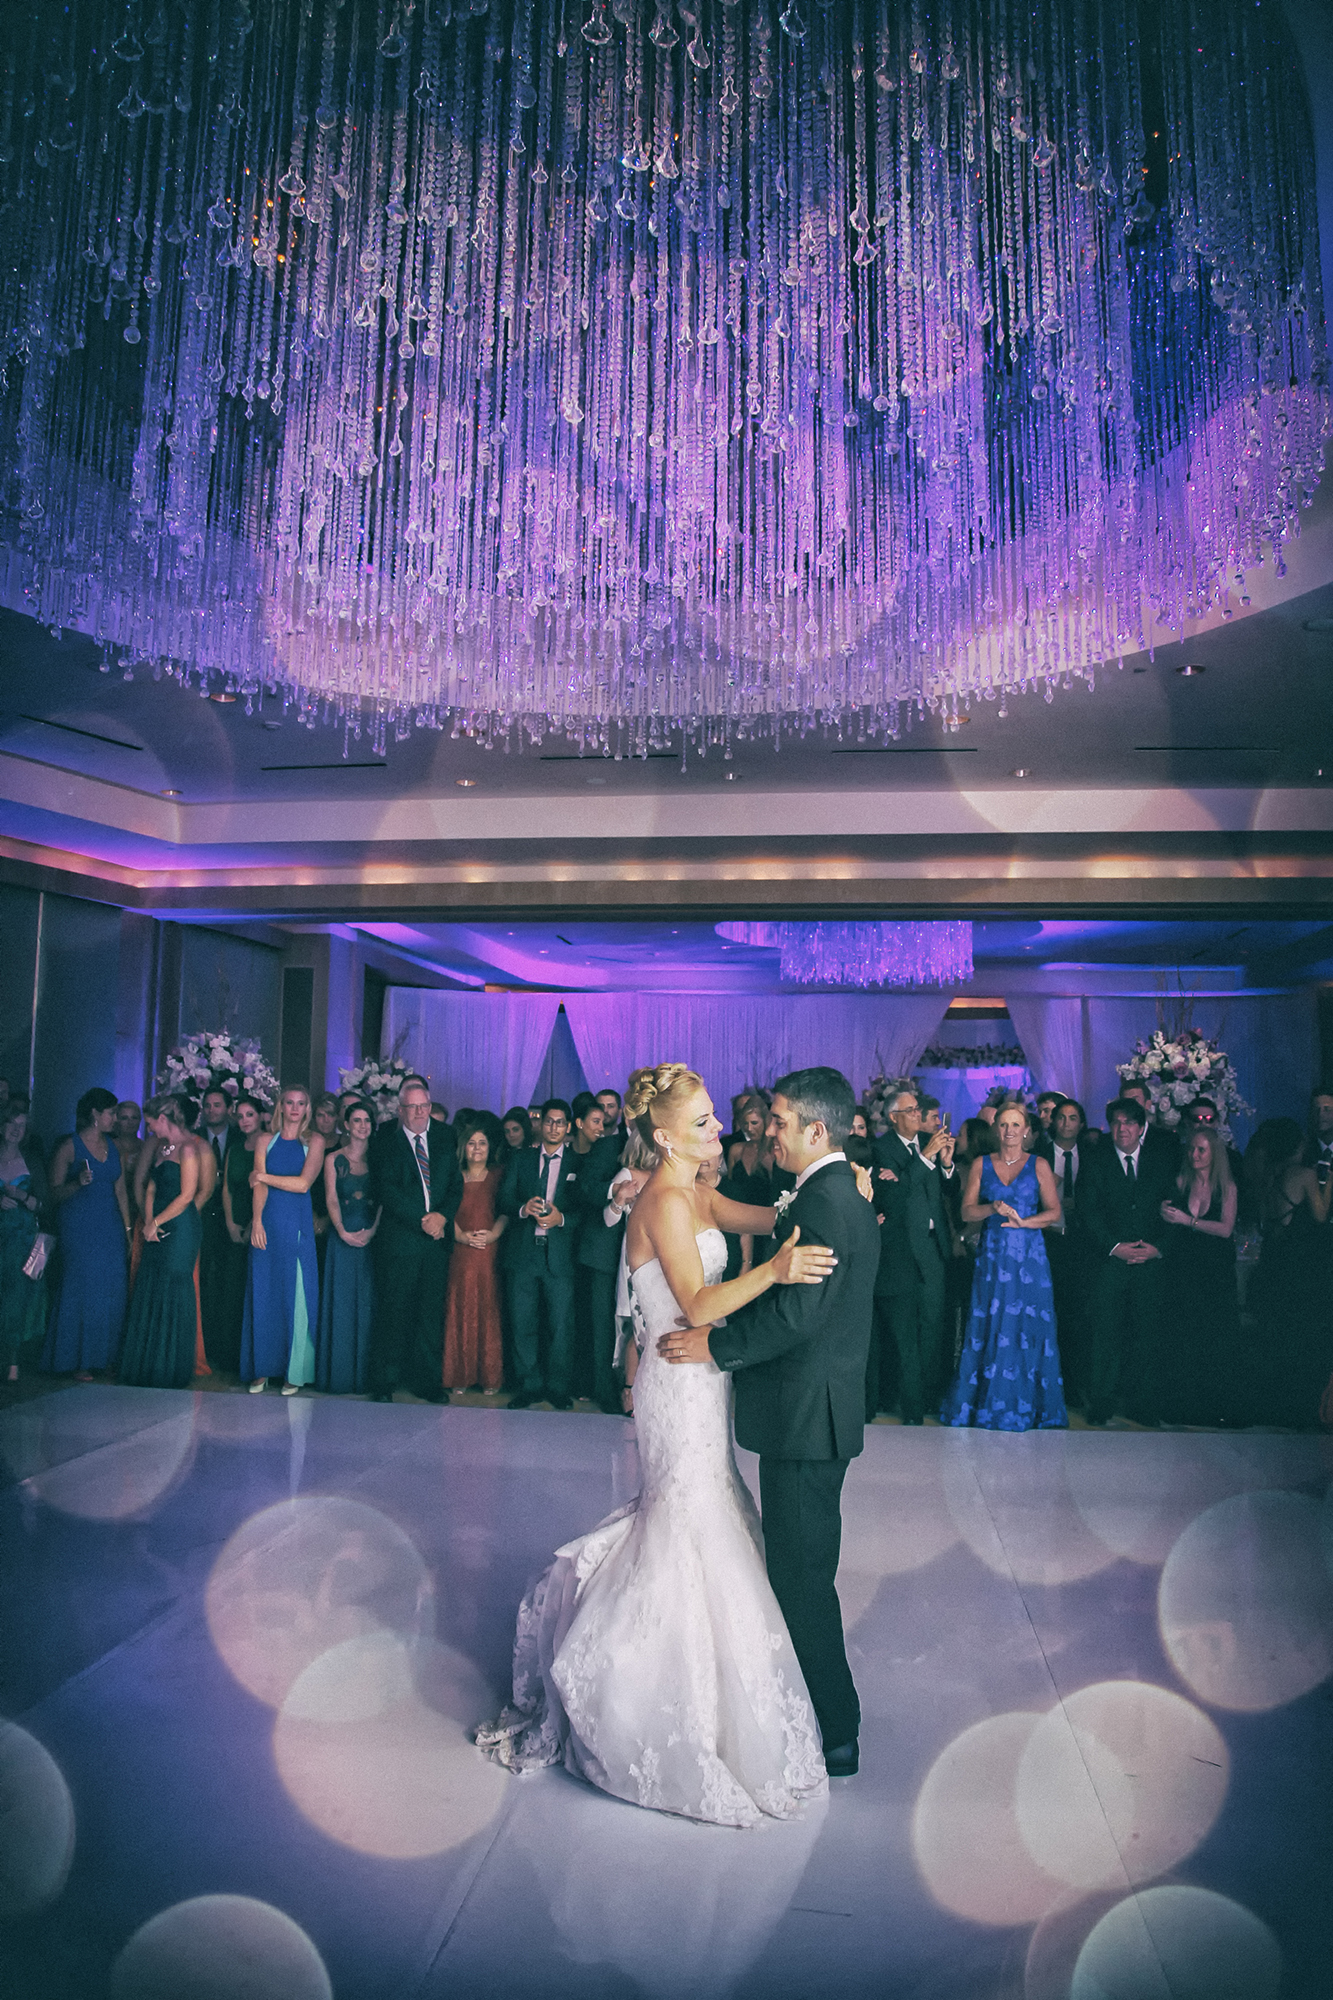 ritz-carlton-florida-wedding-jeffkolodny-photography-13